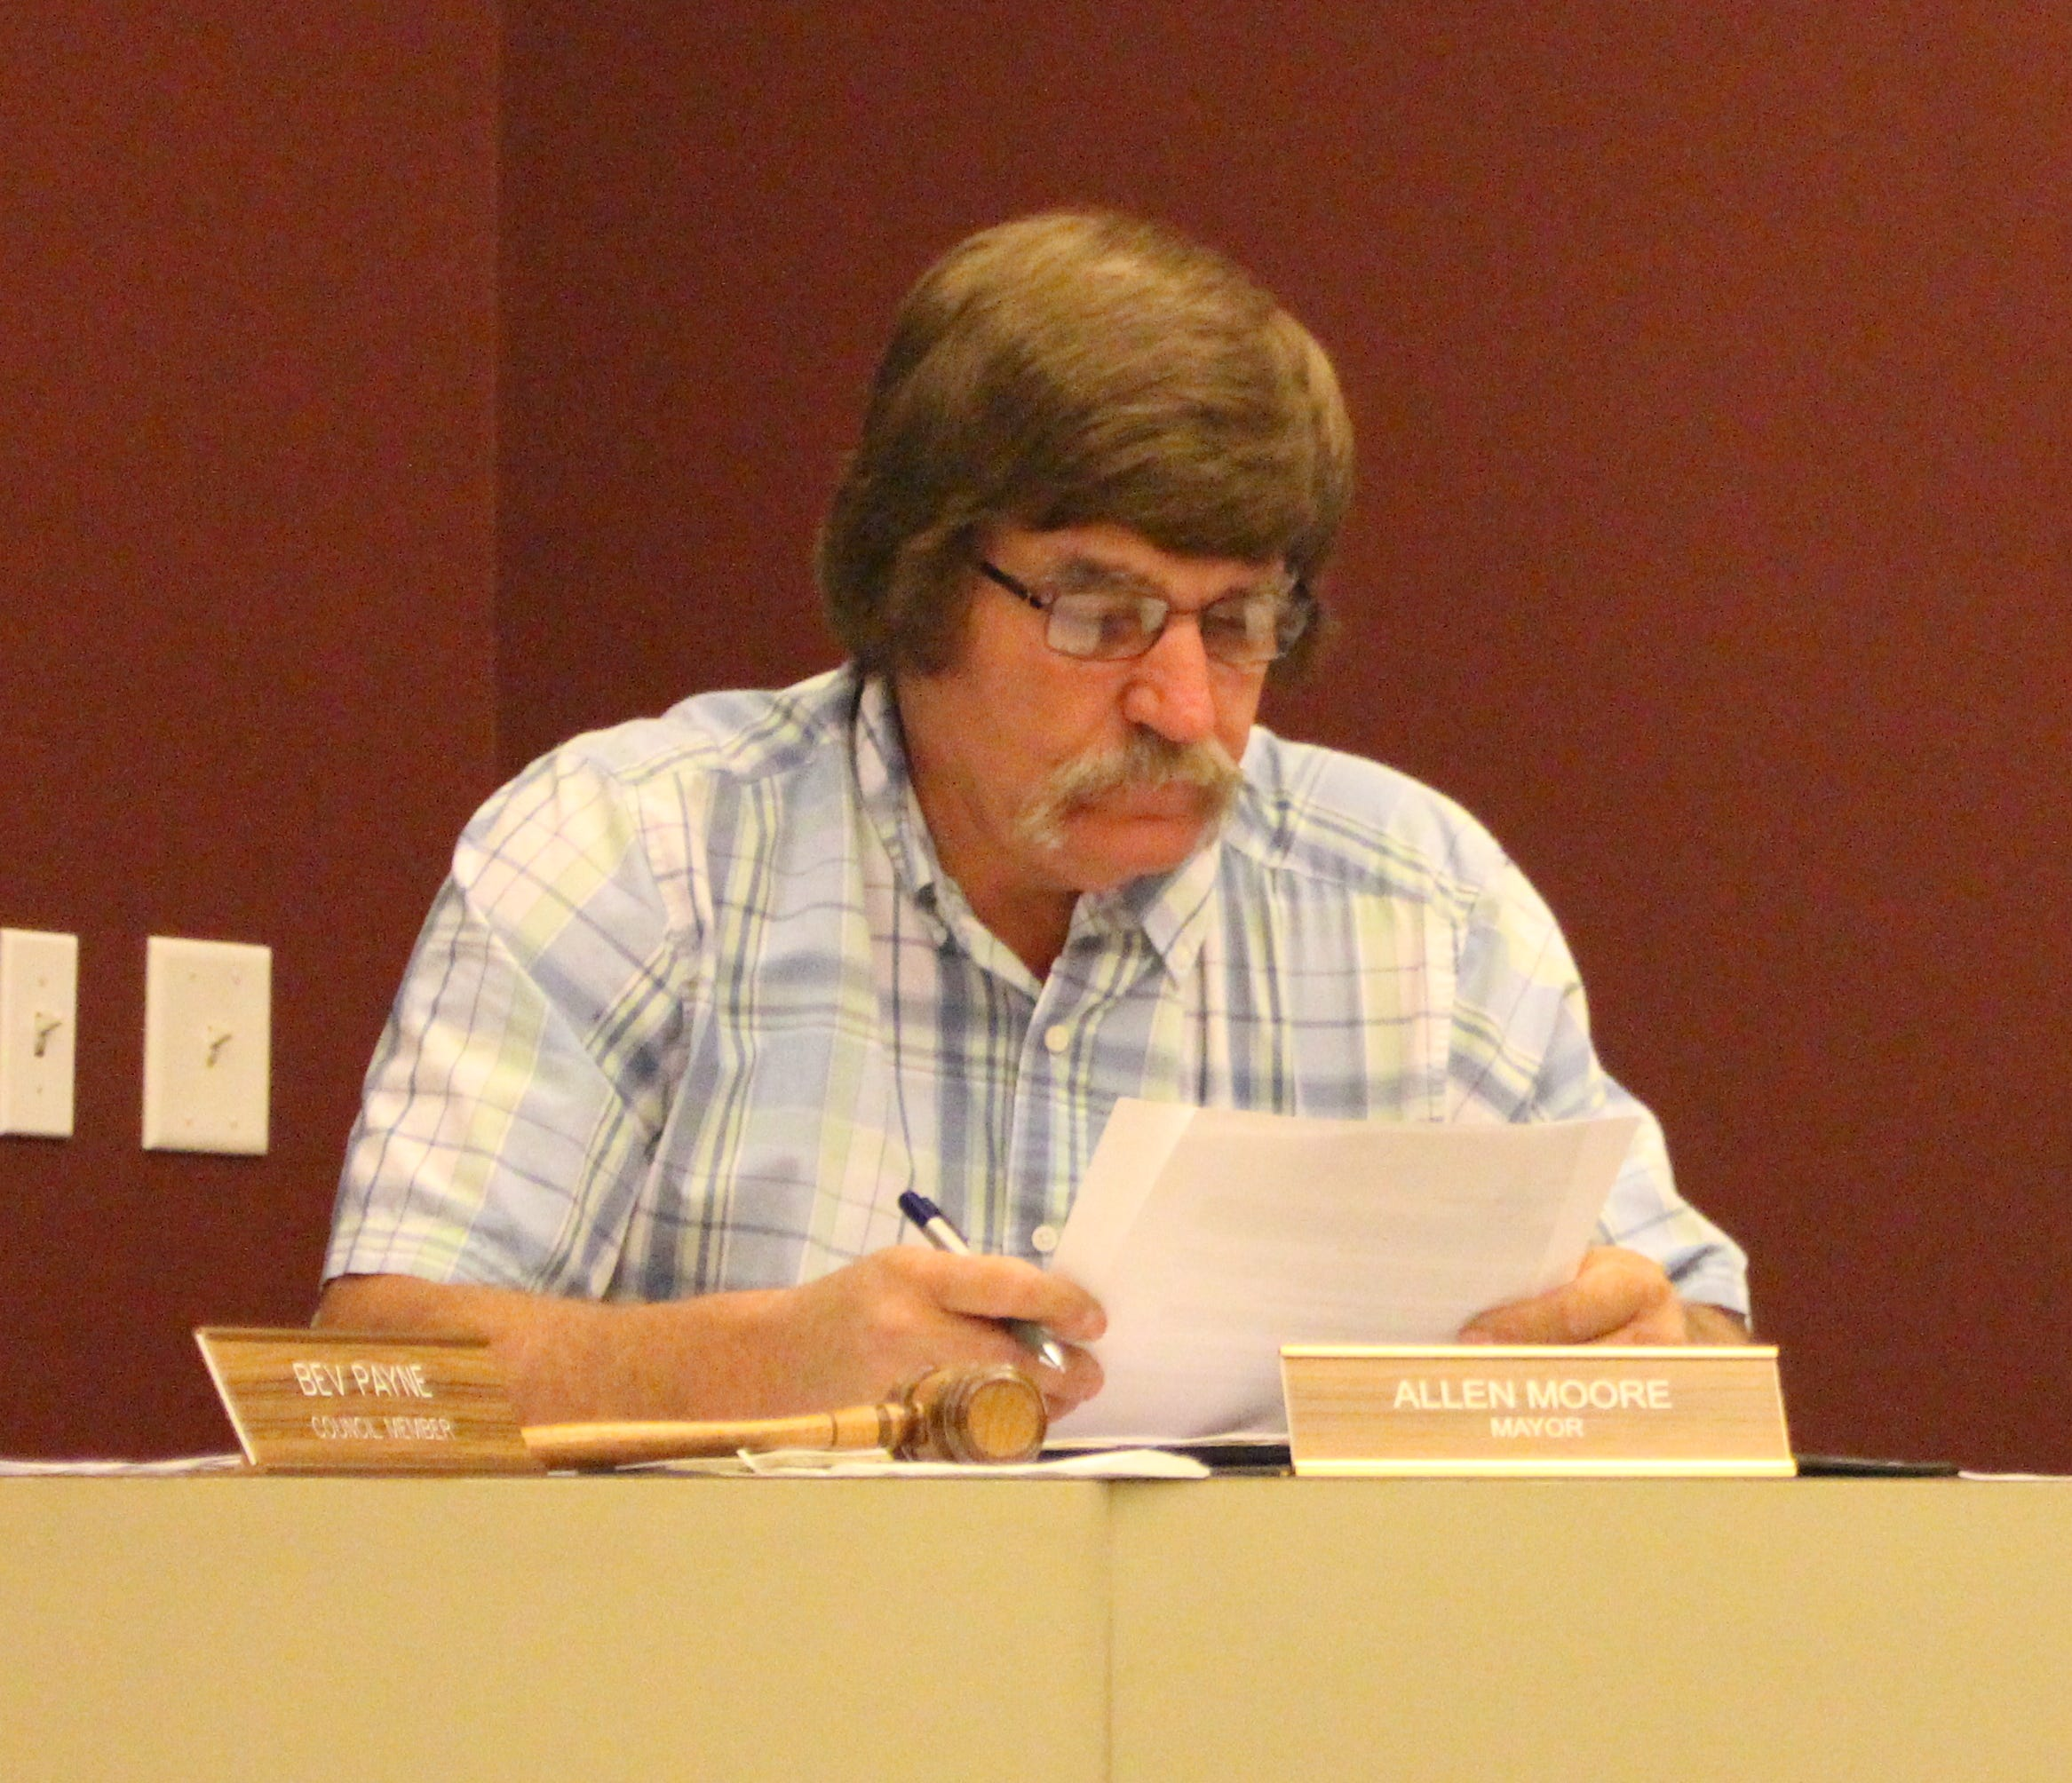 Crestline Mayor Allen Moore sits during a village council meeting Monday, Oct. 15, 2018. Moore said he'll resign later this week.